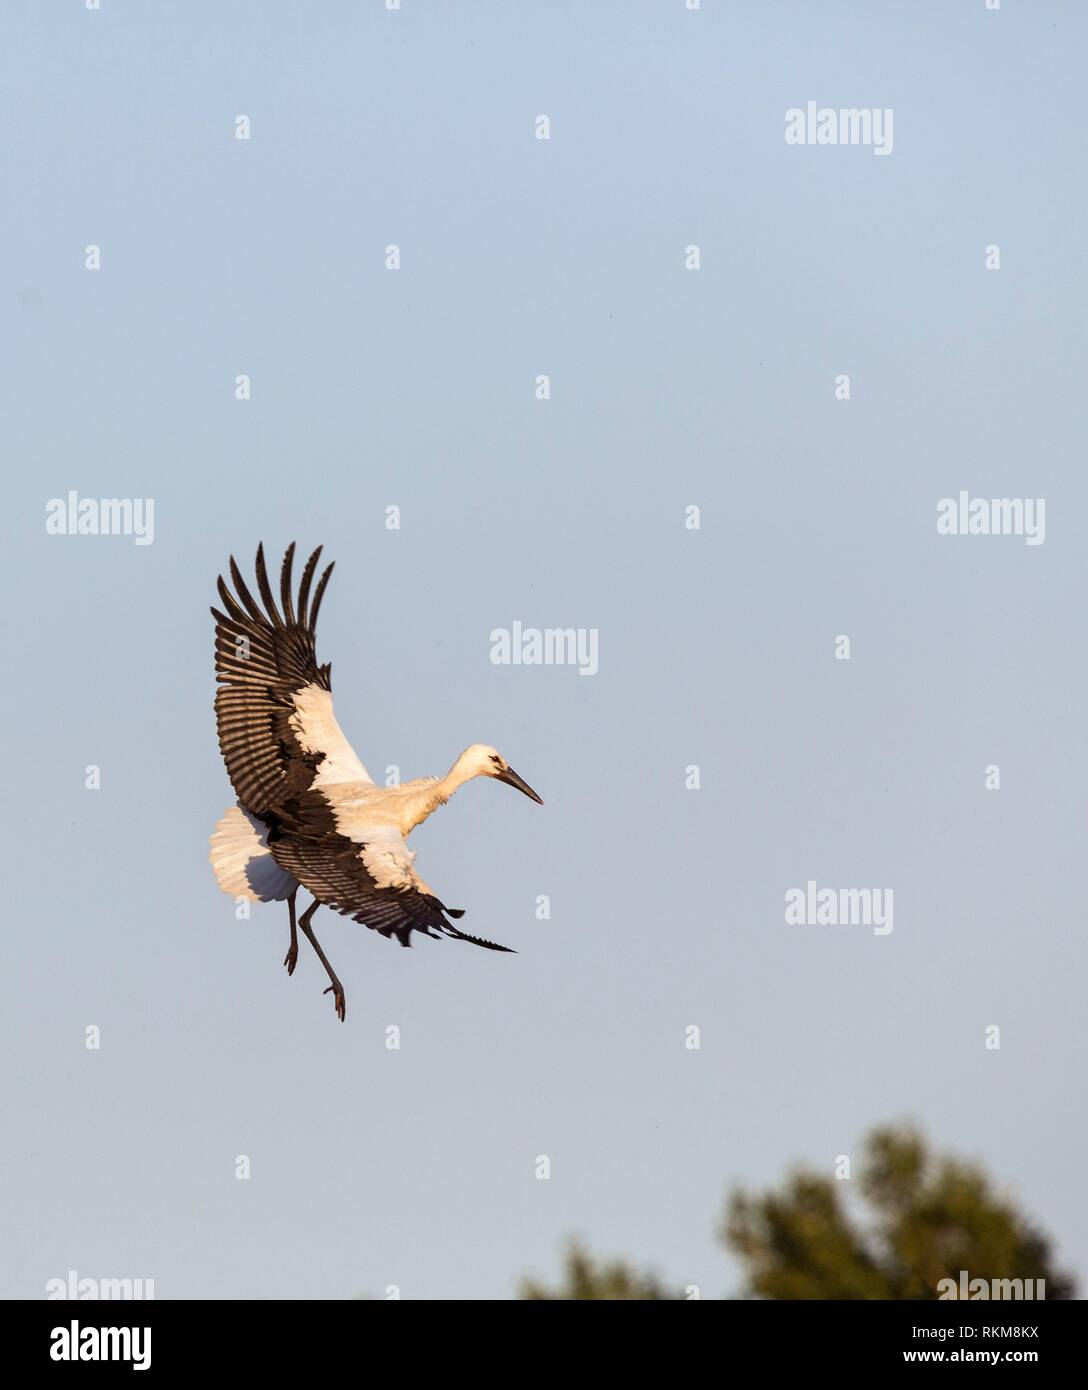 White stork (Ciconia ciconia) flying. Madrid province, Spain. Stock Photo